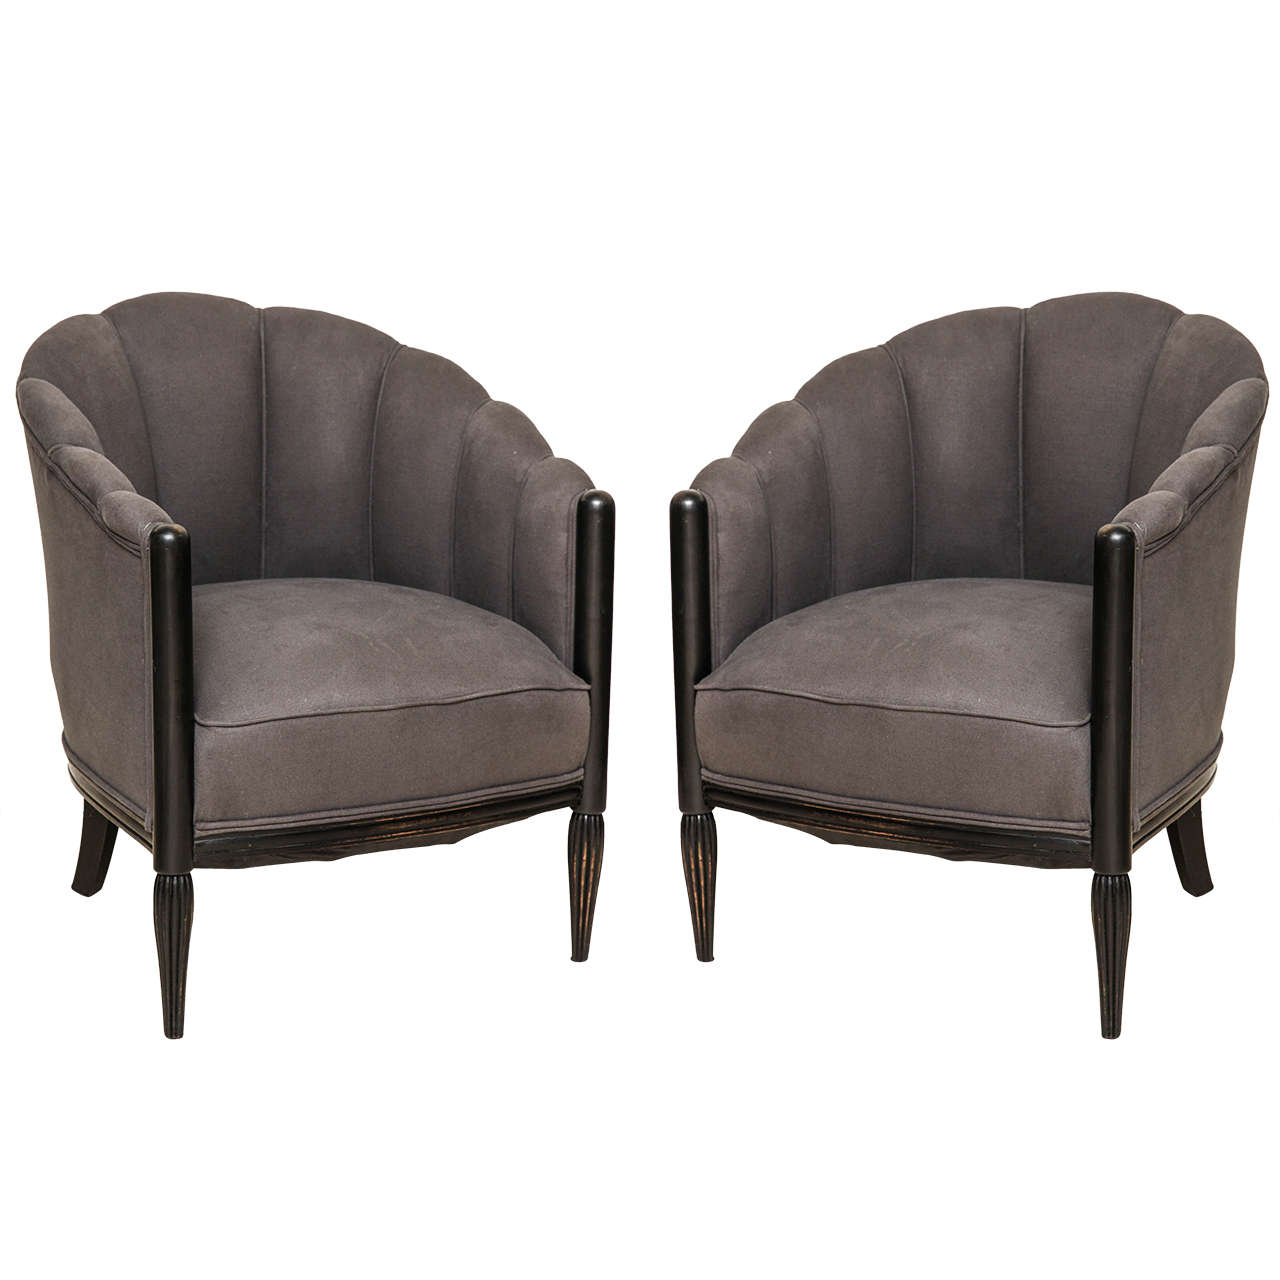 Charmant Pair Of Gray French Art Deco Fan Back Club Chairs With Ebonized Legs, Circa  1940